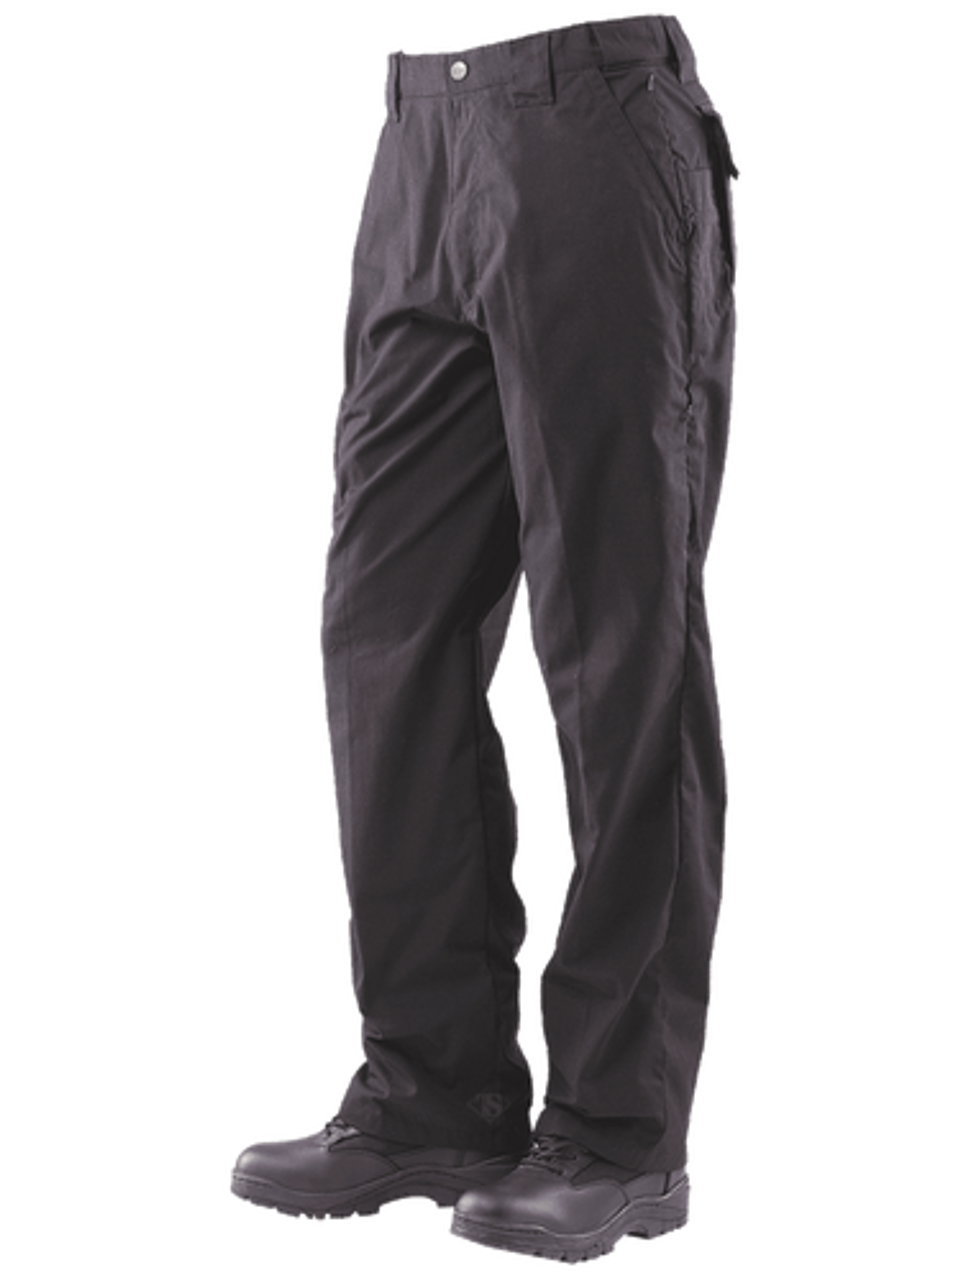 Tru-Spec 24-7 SERIES® TS- 1185 Men's Classic Tactical Pants, Polyester/Cotton, Relaxed,  Uniform/Cargo, Adjustable Waistband, Expandable back pockets with hook and loop closure, available in black, khaki and navy